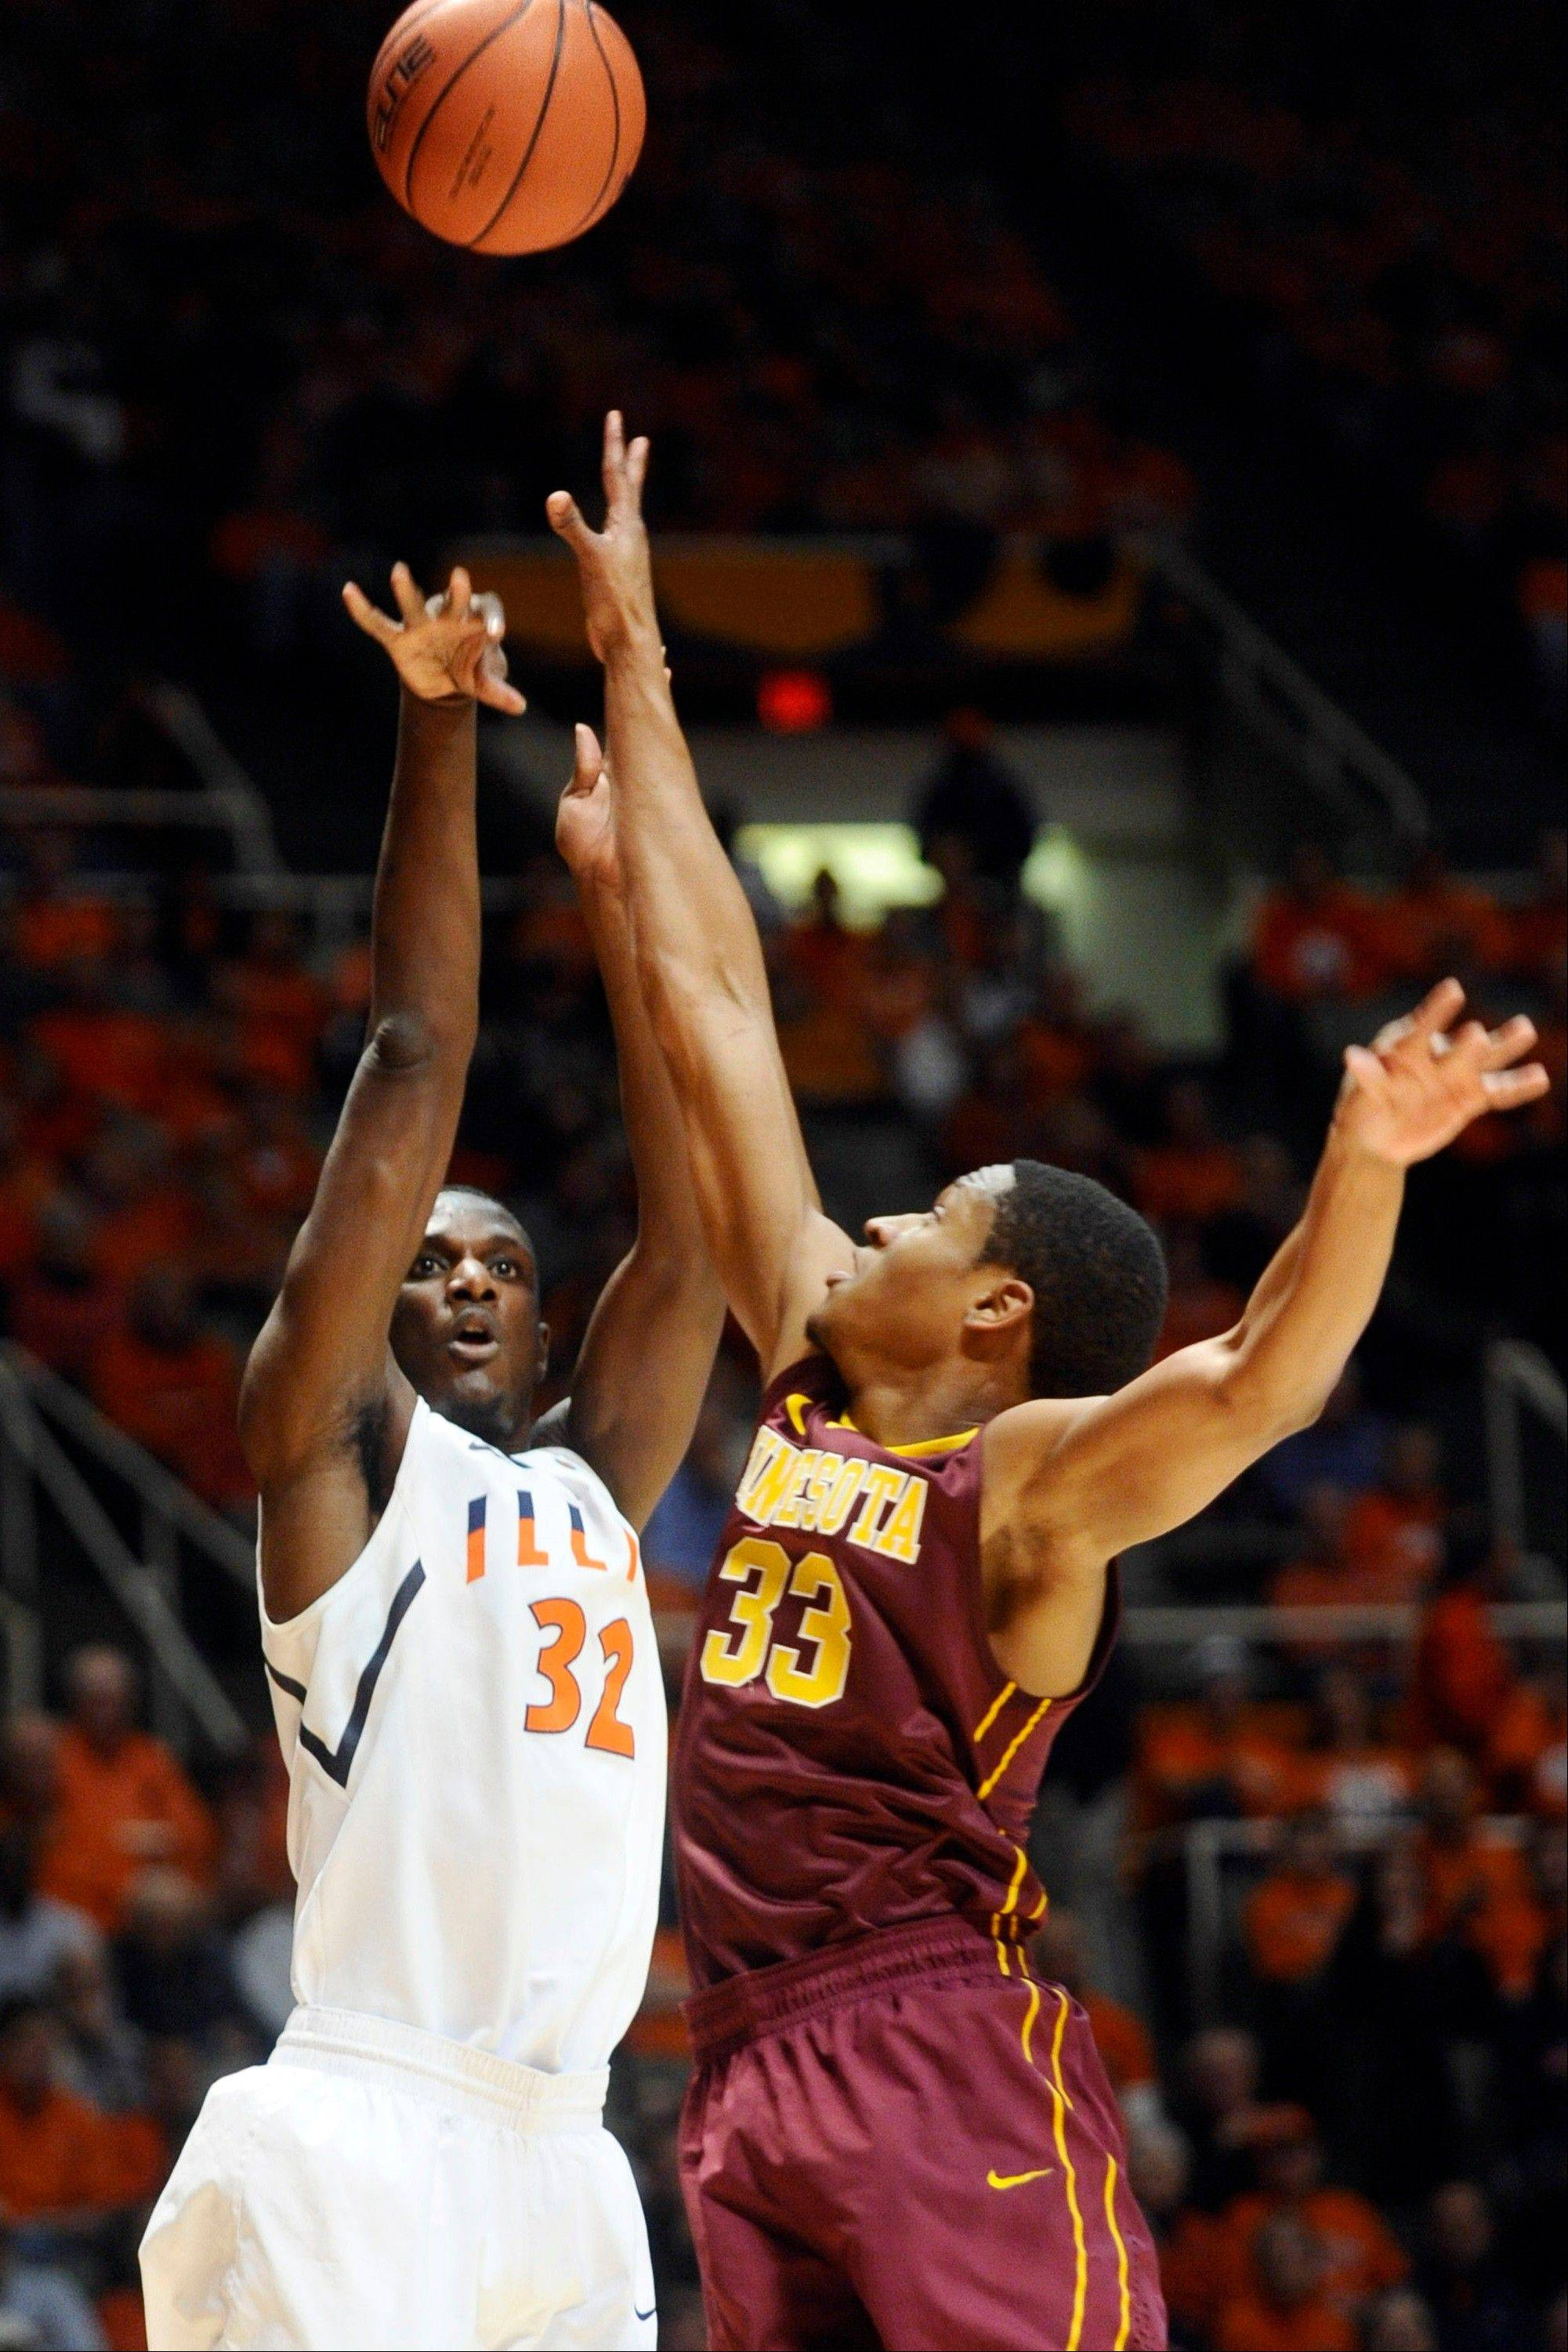 Illinois' Nnanna Egwu (32) shoots as Minnesota forward Rodney Williams (33) defends during their NCAA college basketball game, Wednesday, Jan. 9, 2013, in Champaign.